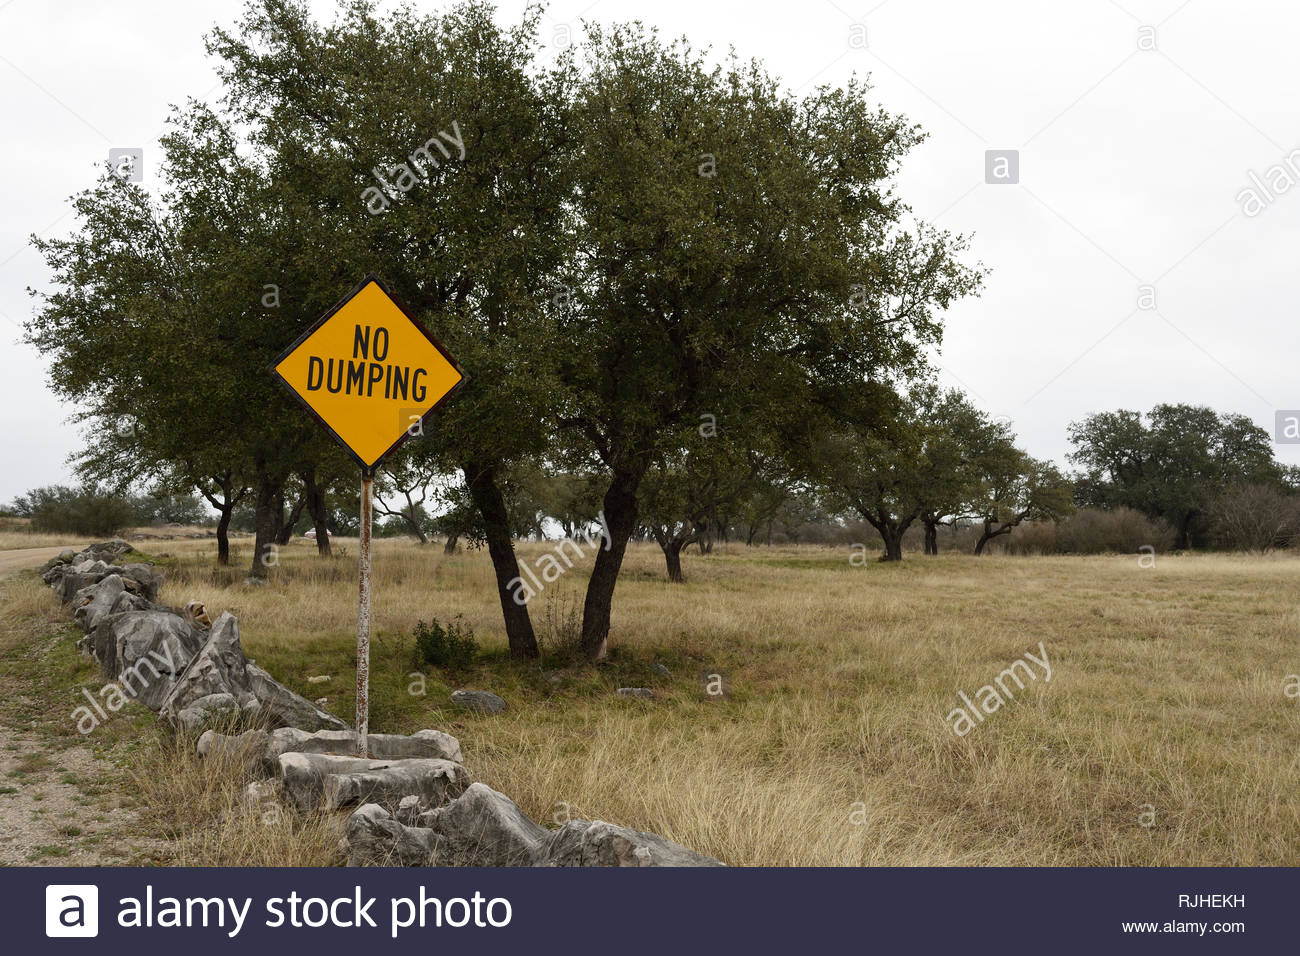 No Dumping Sign at Dead Mans Hole near Marble Falls Texas in the Texas Hill Country. No Dumping. Warning Sign. Yellow Diamond Warning Sign no Dumping - Stock Image